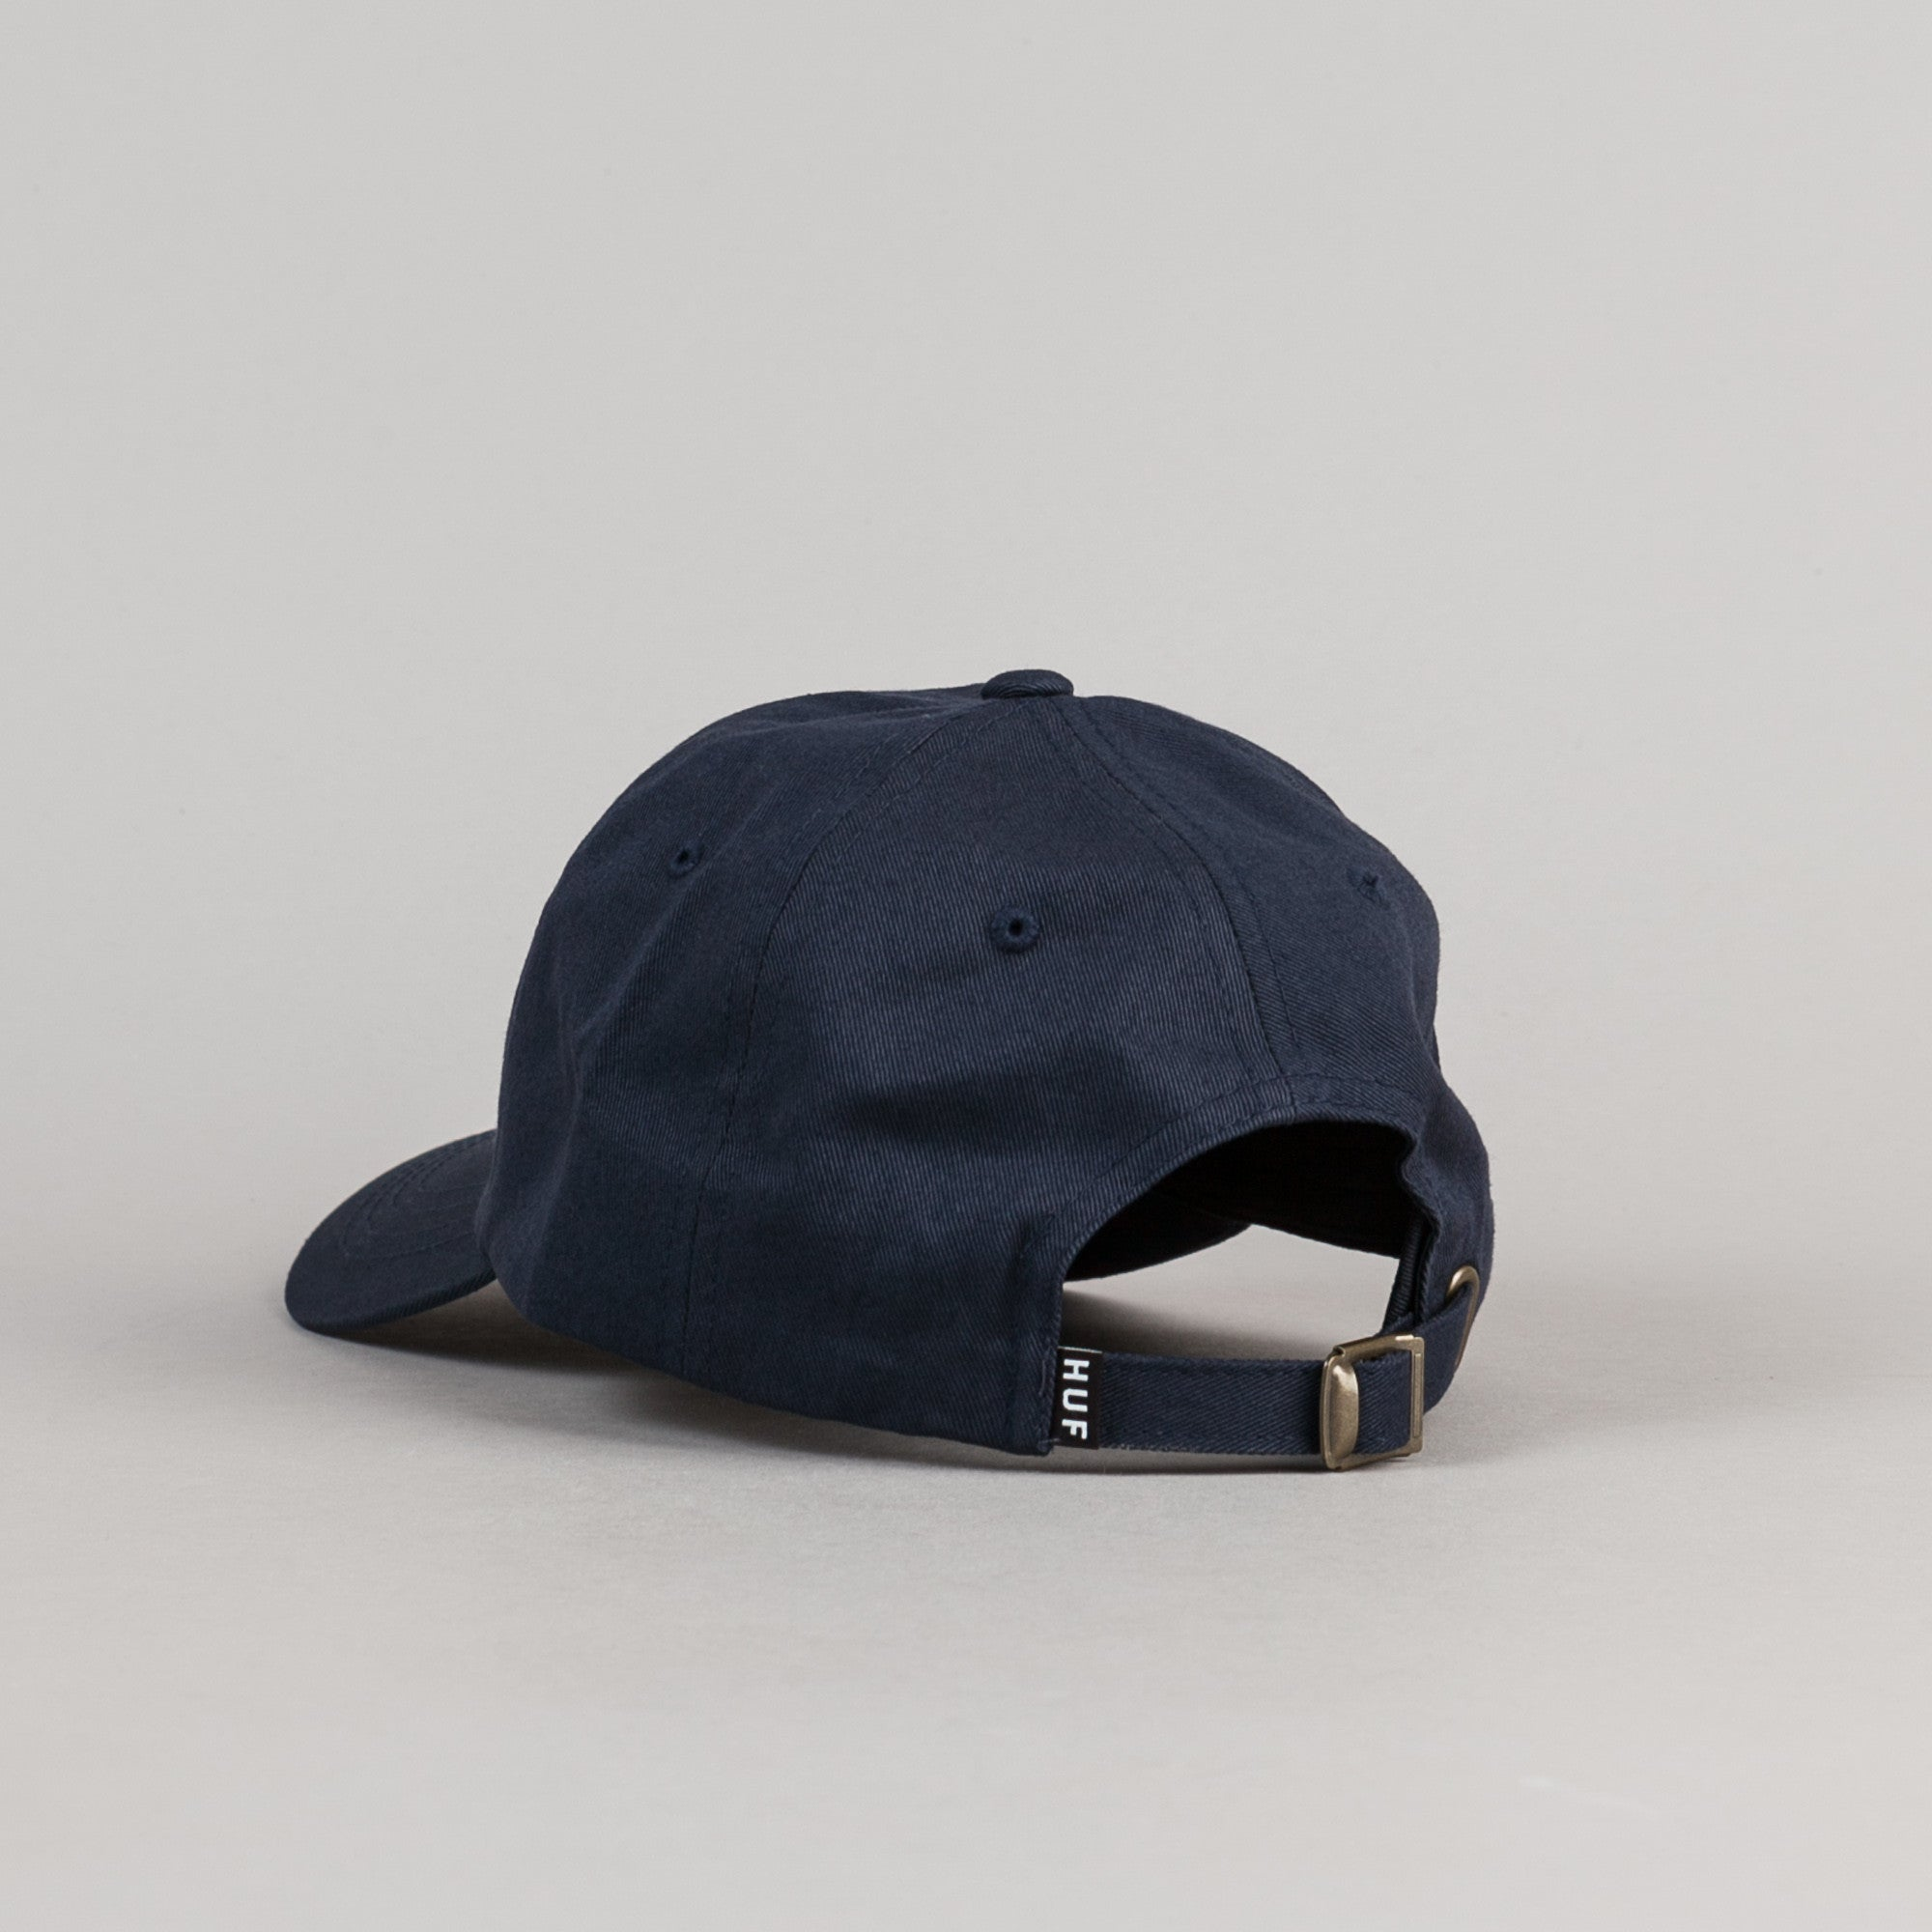 HUF Original Logo Dad Cap - Navy